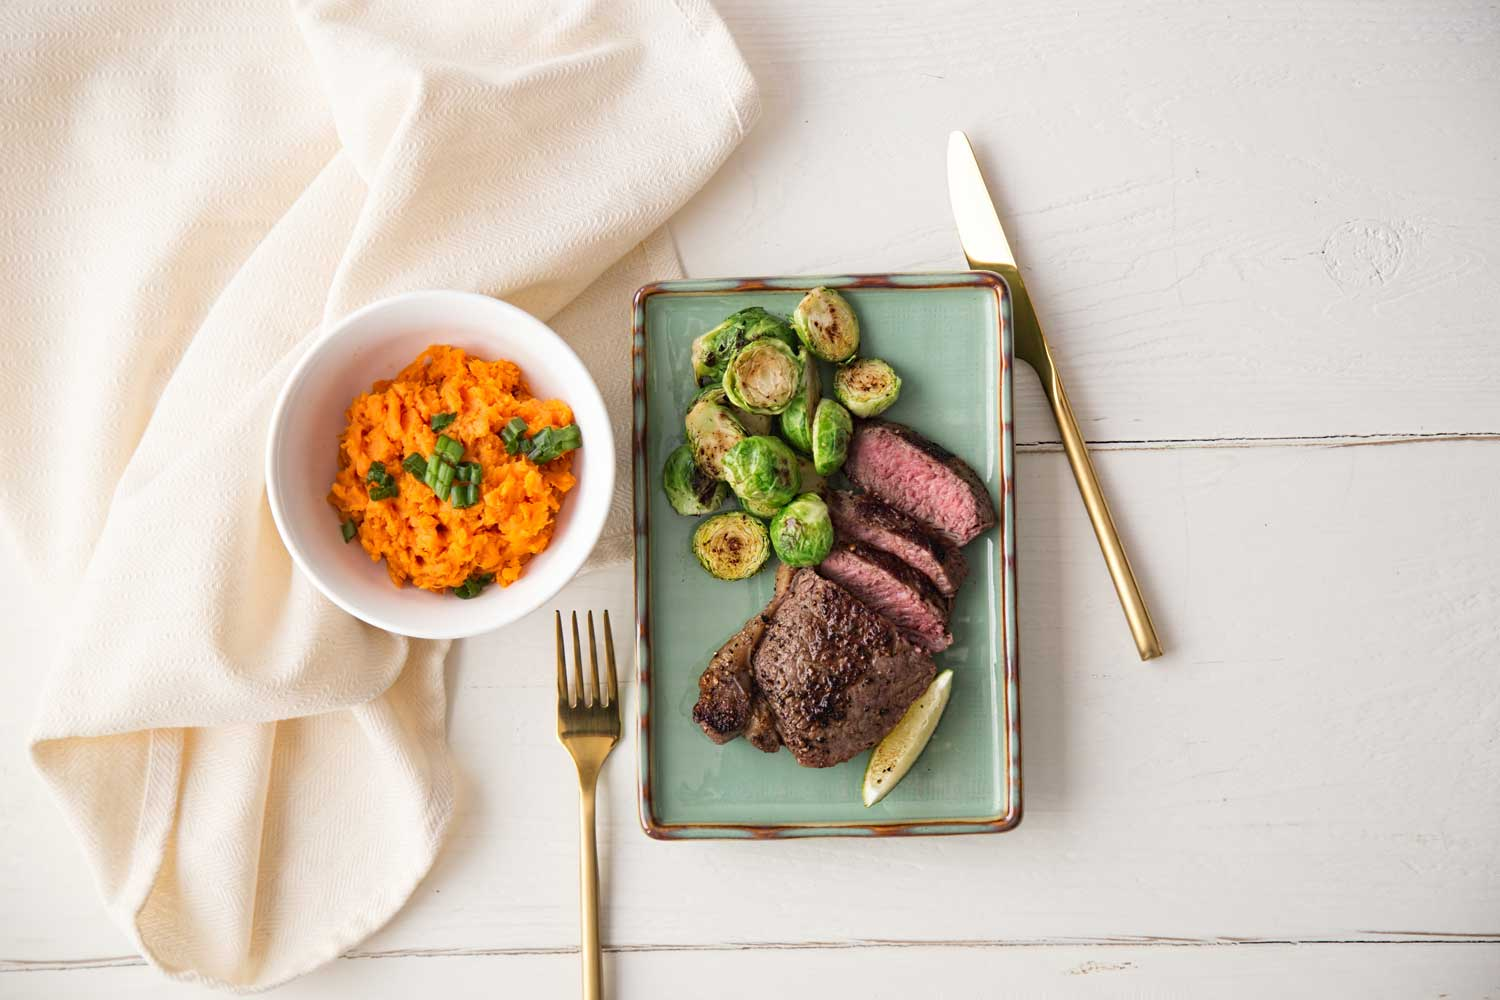 Clean eating meal plan clean eating meal steak and brussels sprouts with side forumfinder Choice Image